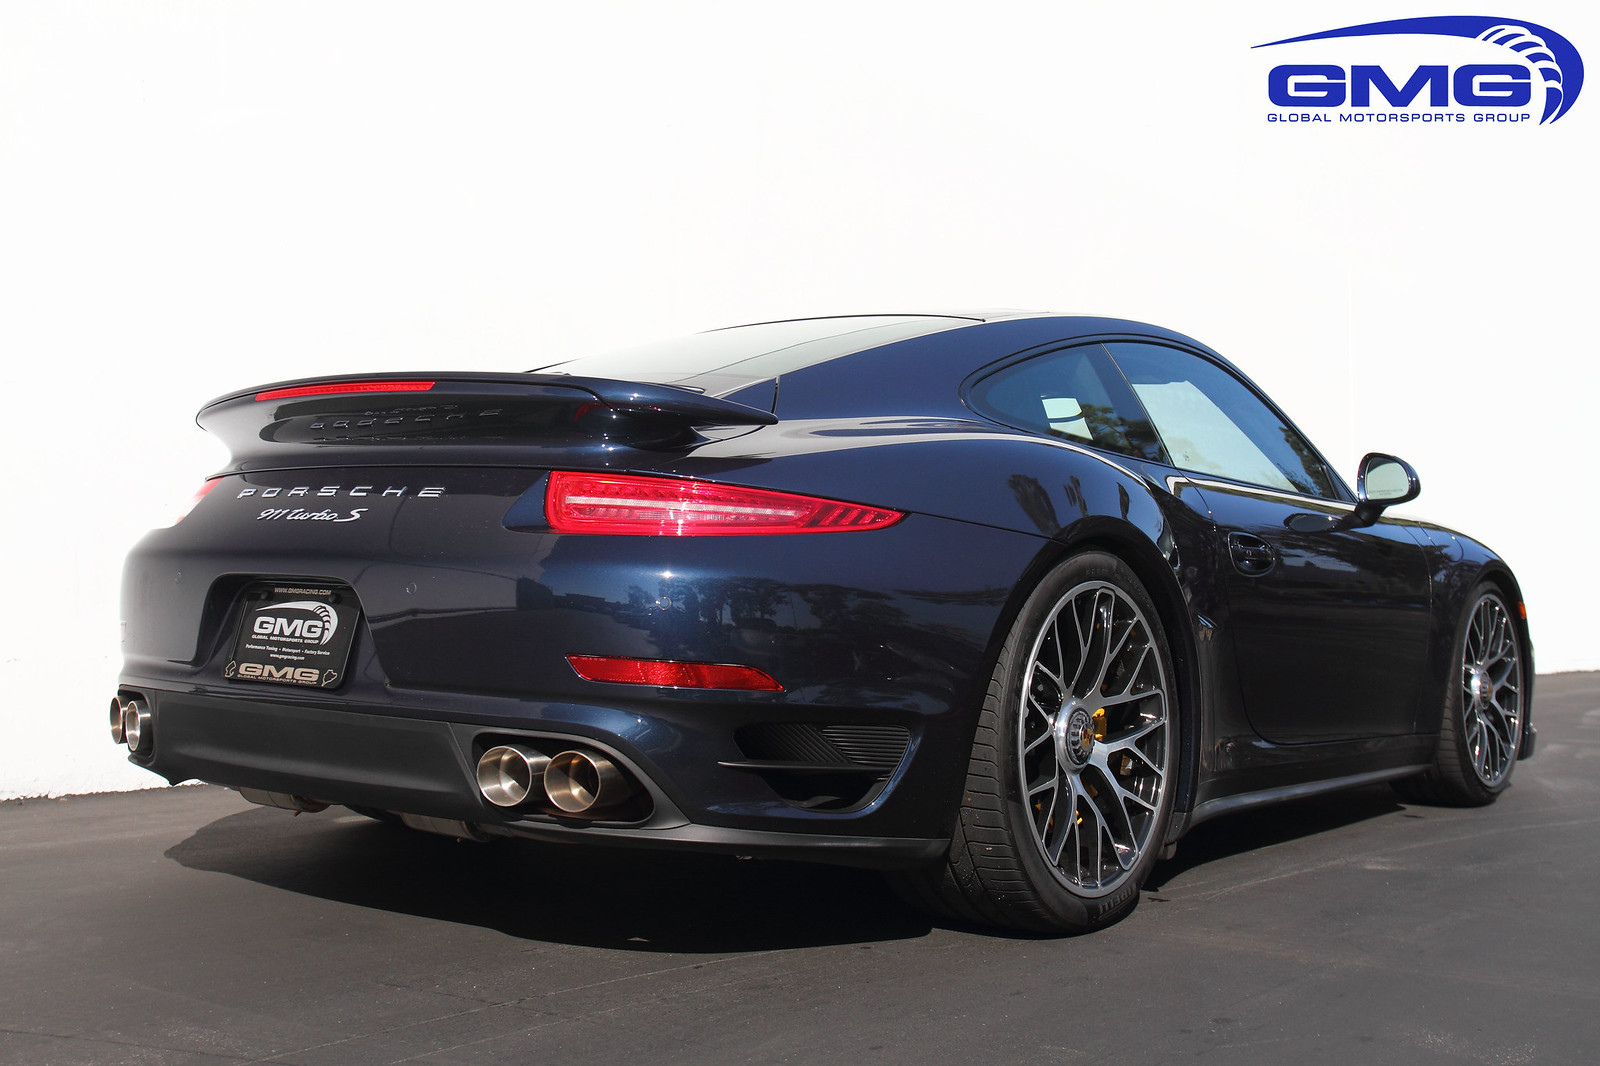 Video Clip Of Porsche 991 Turbo S With Gmg Exhaust Headers Amp Giac Stage 2 Software